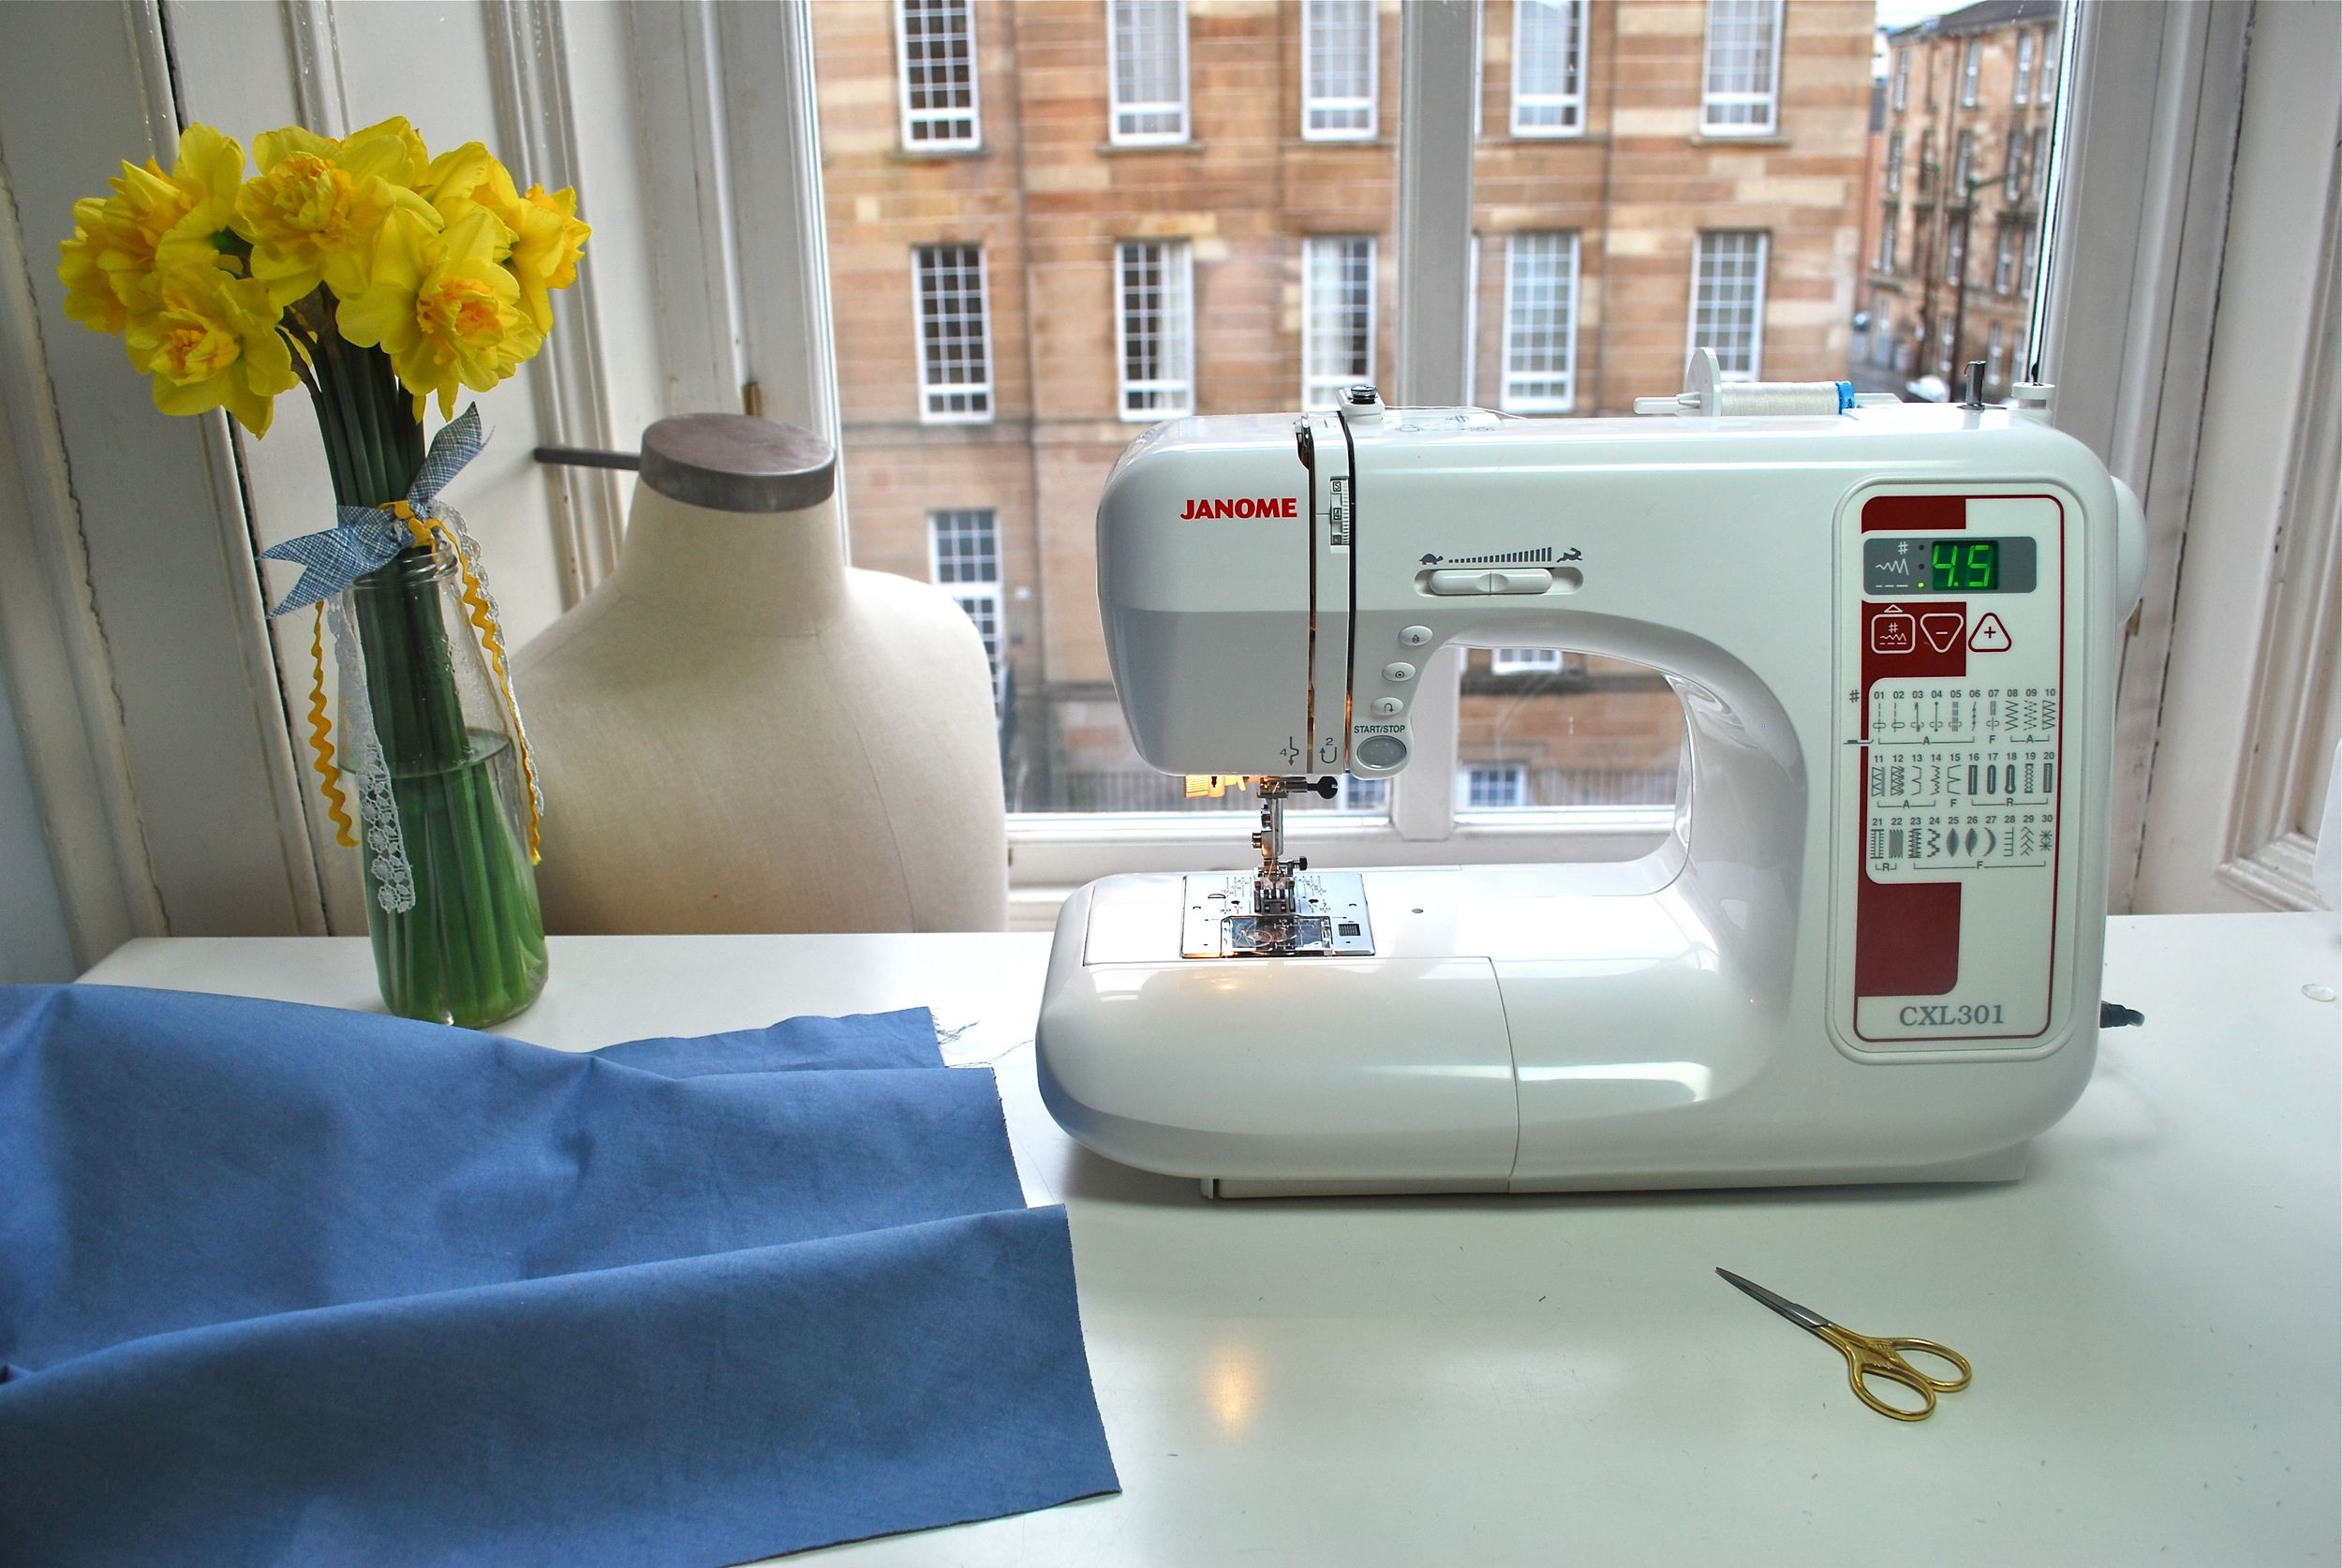 Just about to gather the waistline of version 1. My sewing machine stitch length is set to 4.5mm.